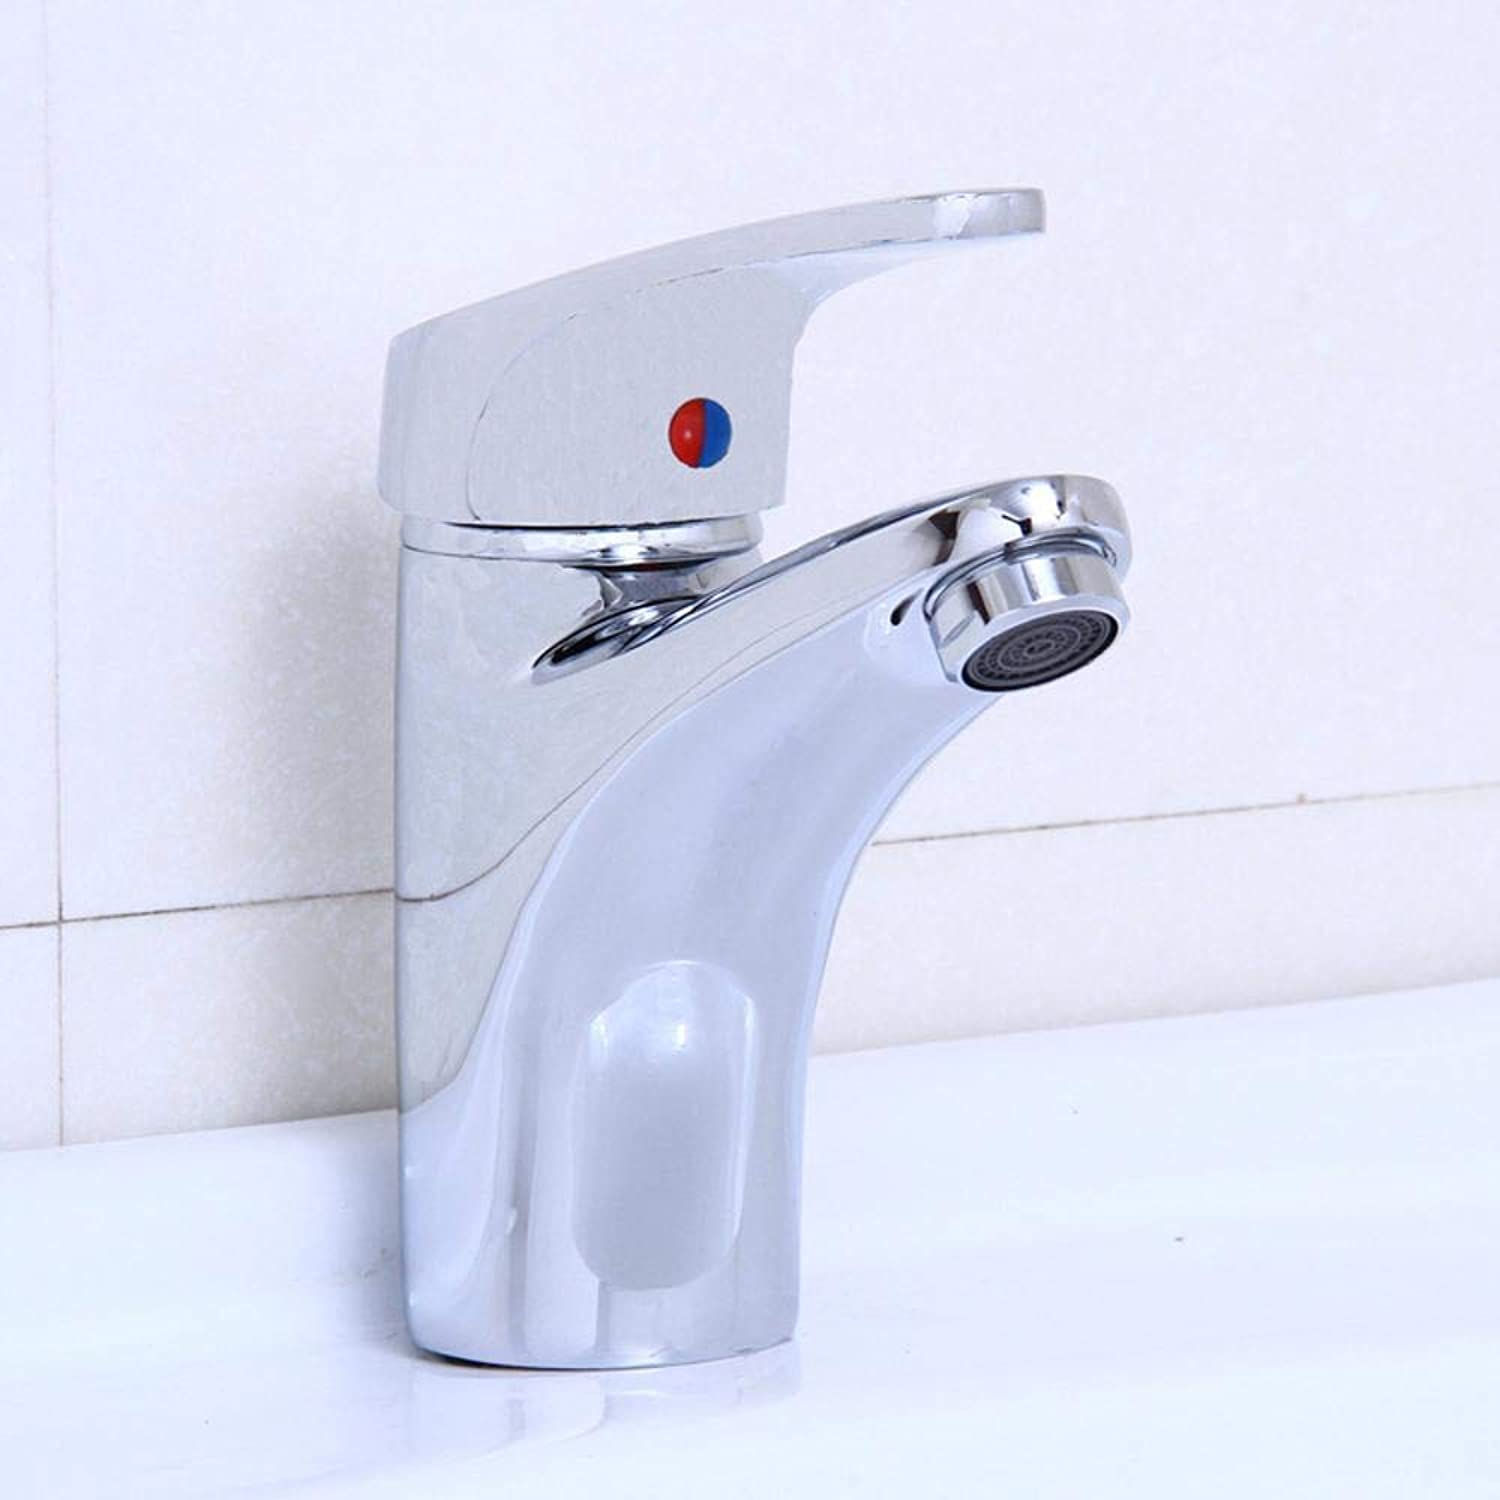 Qpw Sink Faucet All Copper Chrome hot and Cold Basin Faucet washbasin Faucet Single Hole Faucet